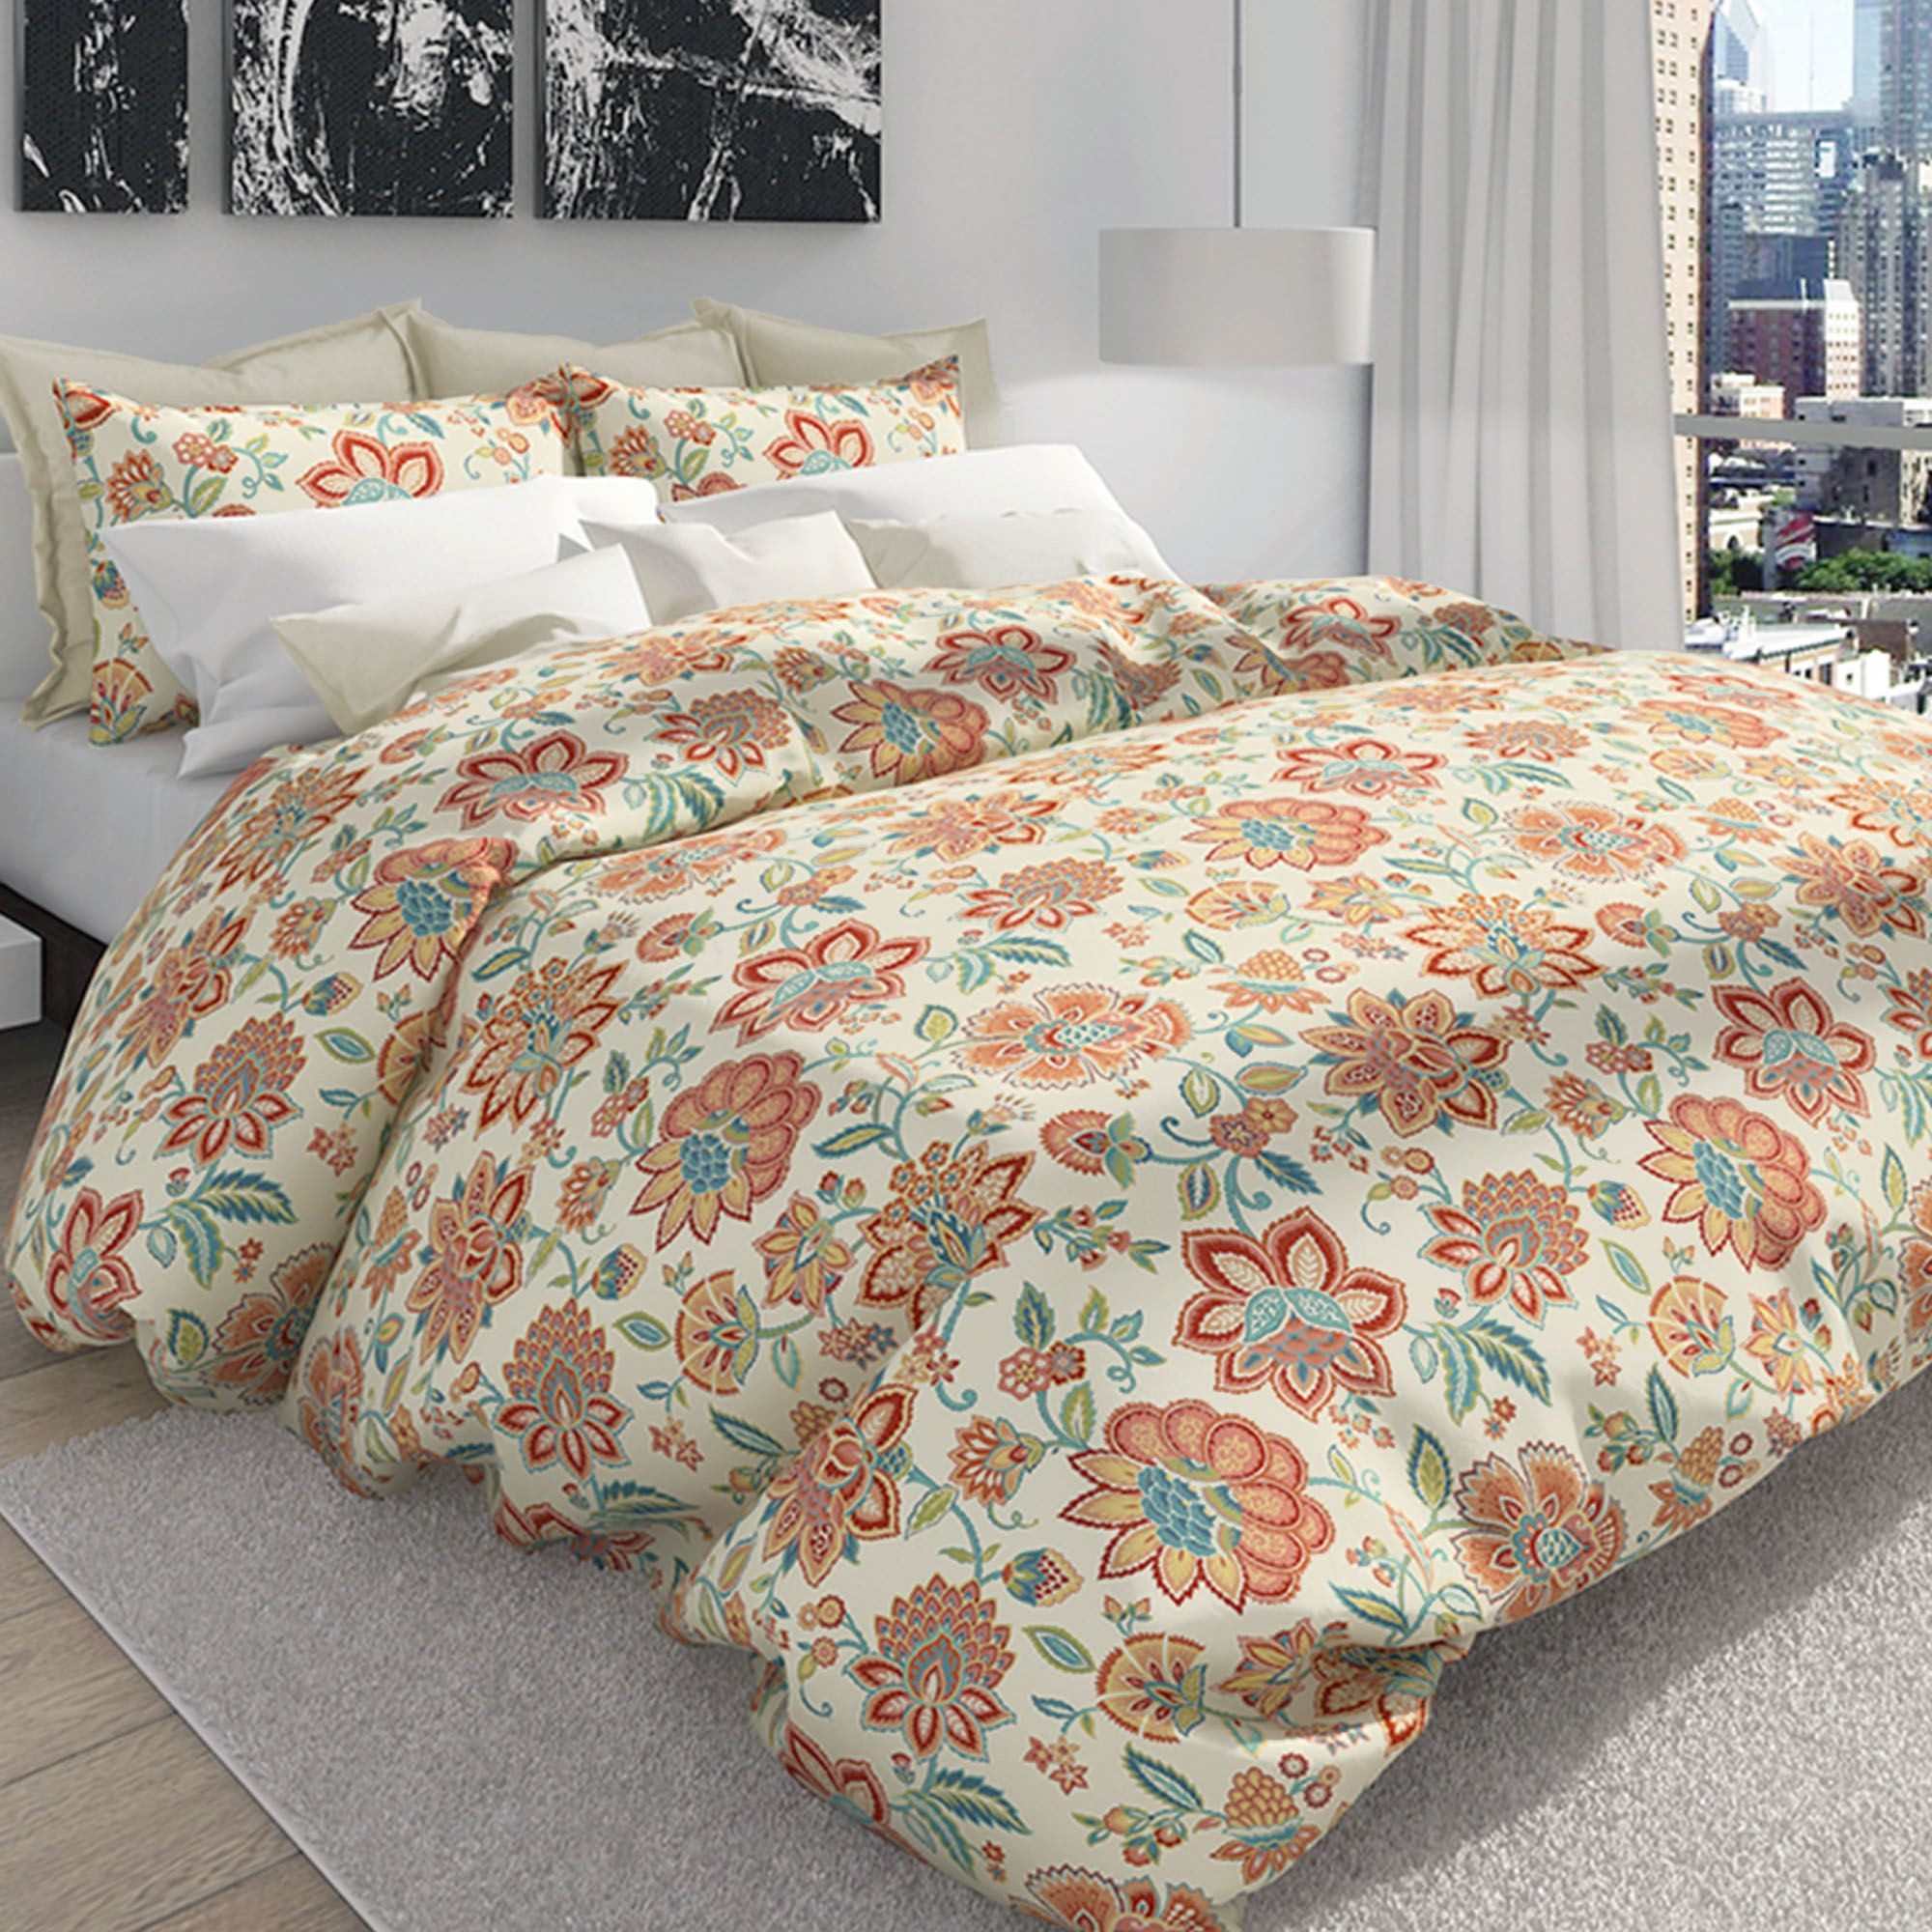 duvet vintage modern floral bedding awesome bathroom covers cover of